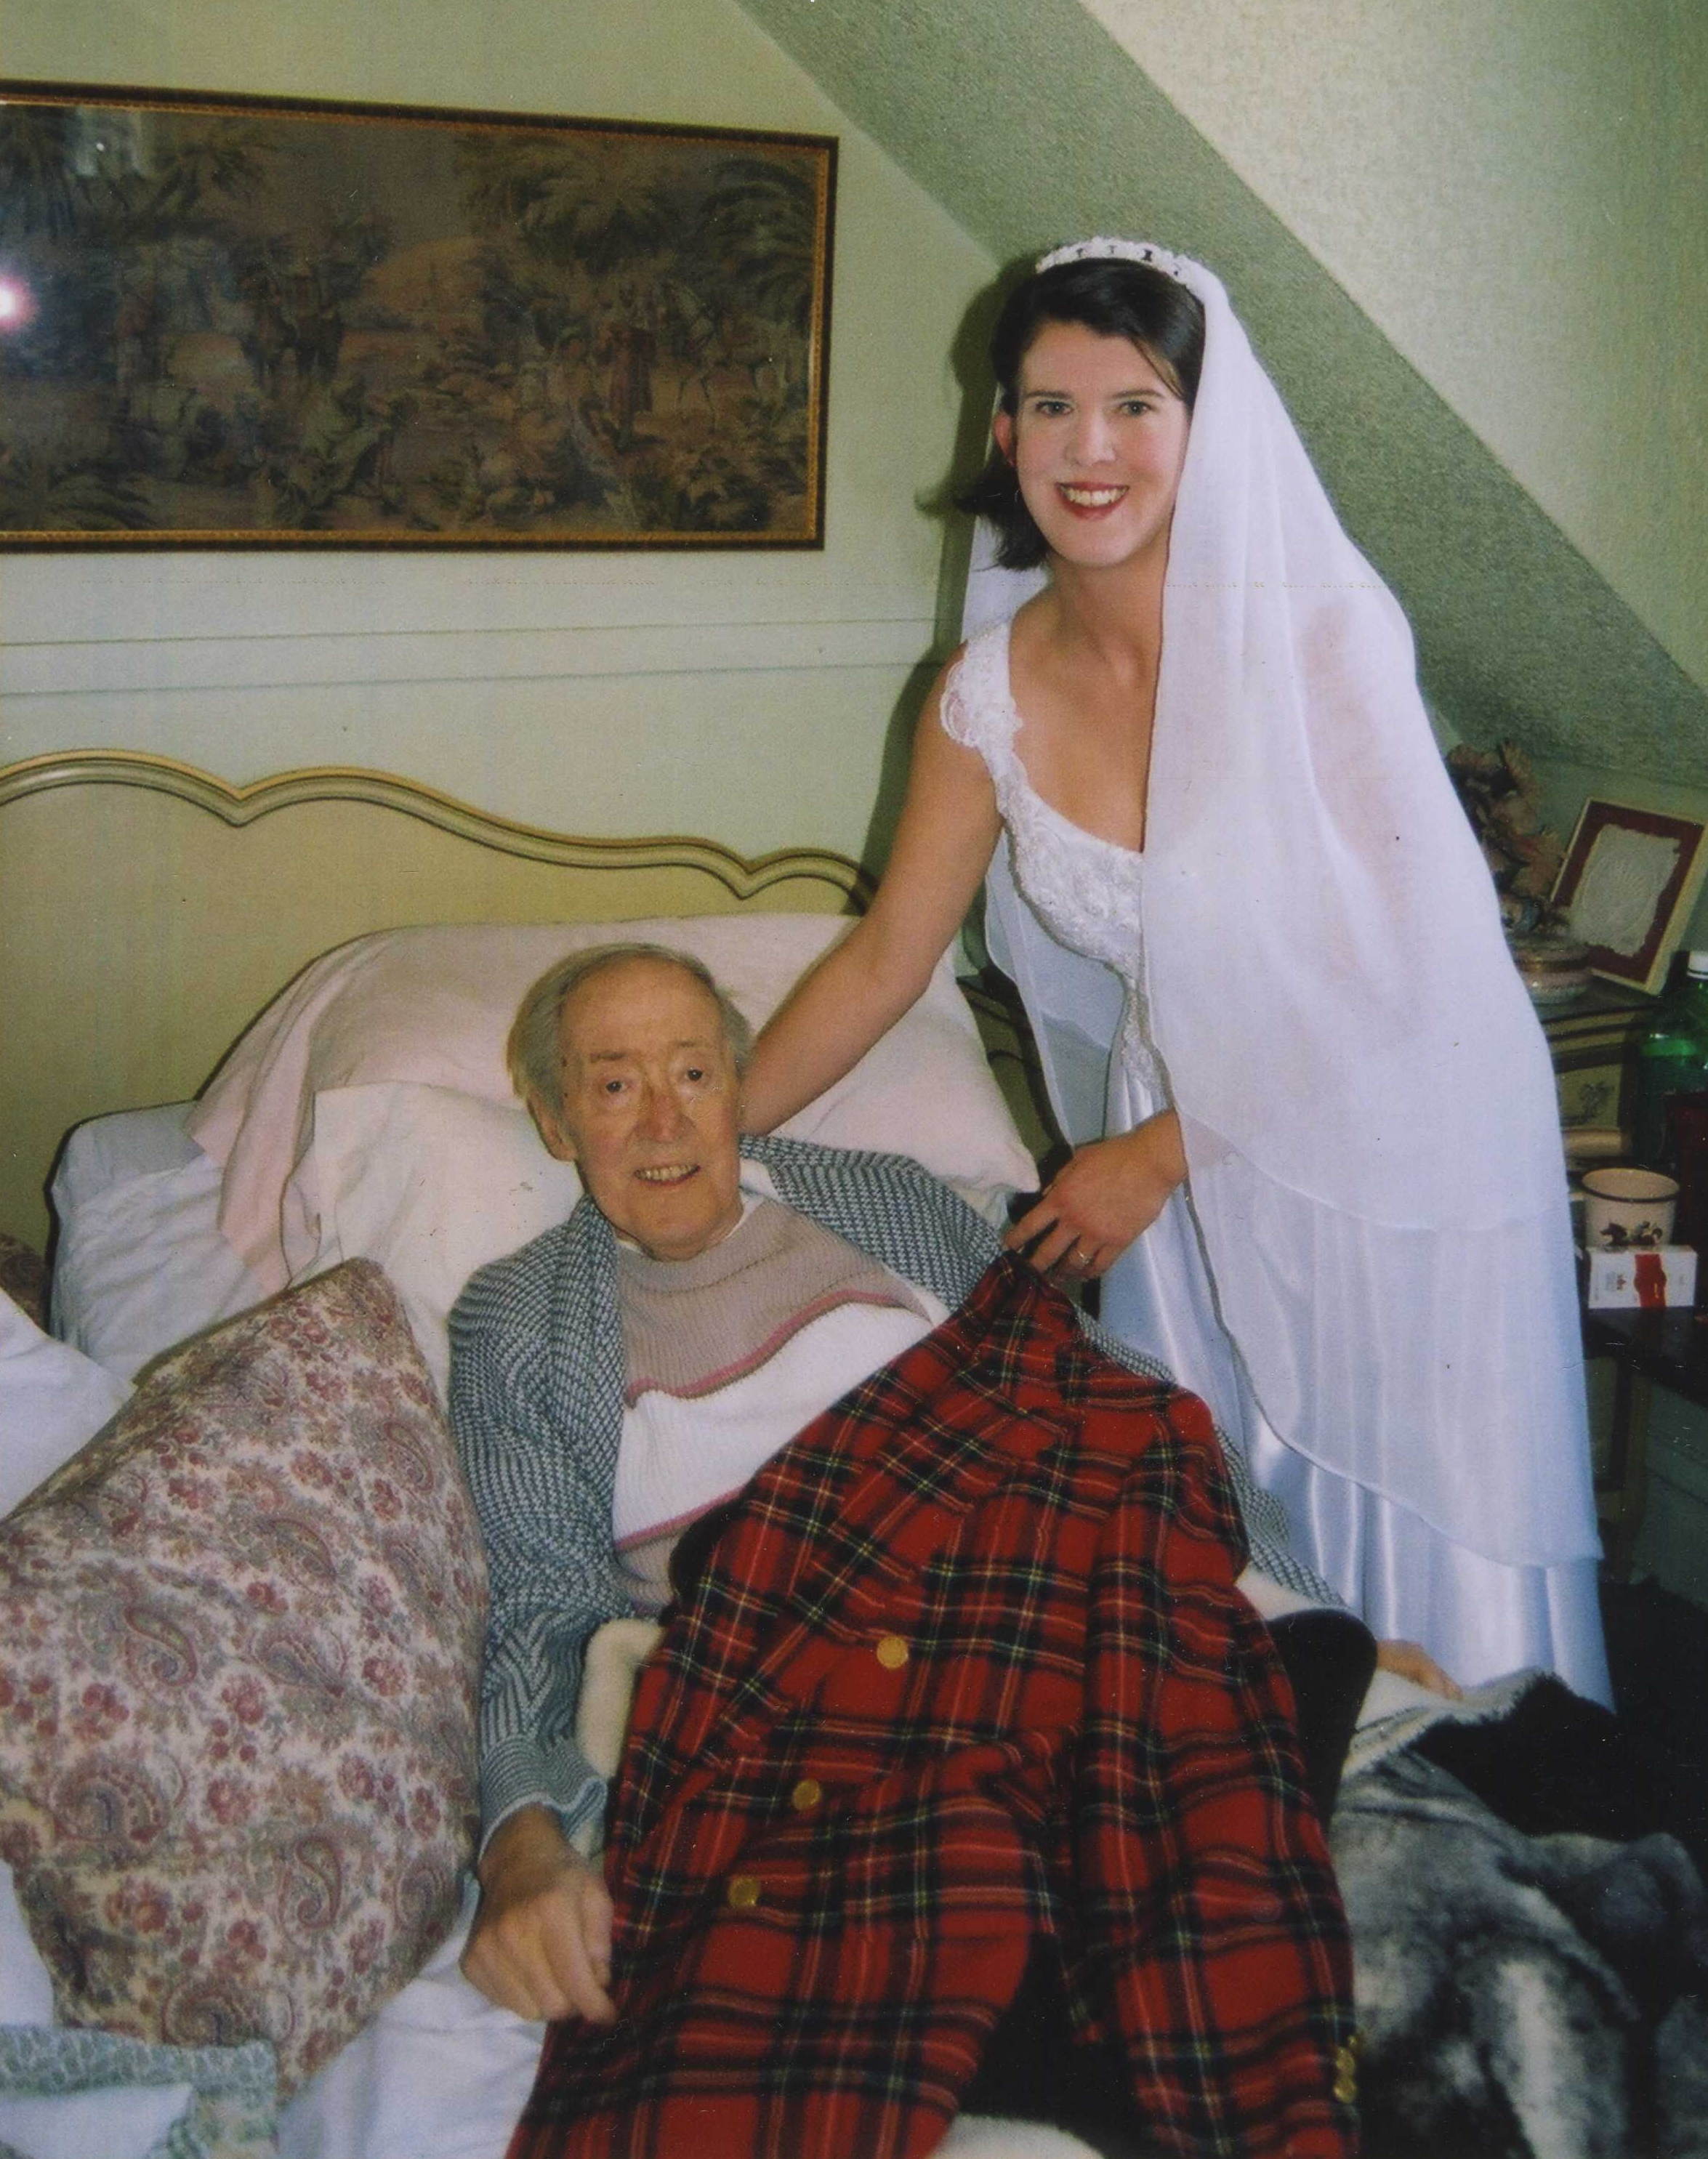 My father and I on my wedding day, November 23, 2003